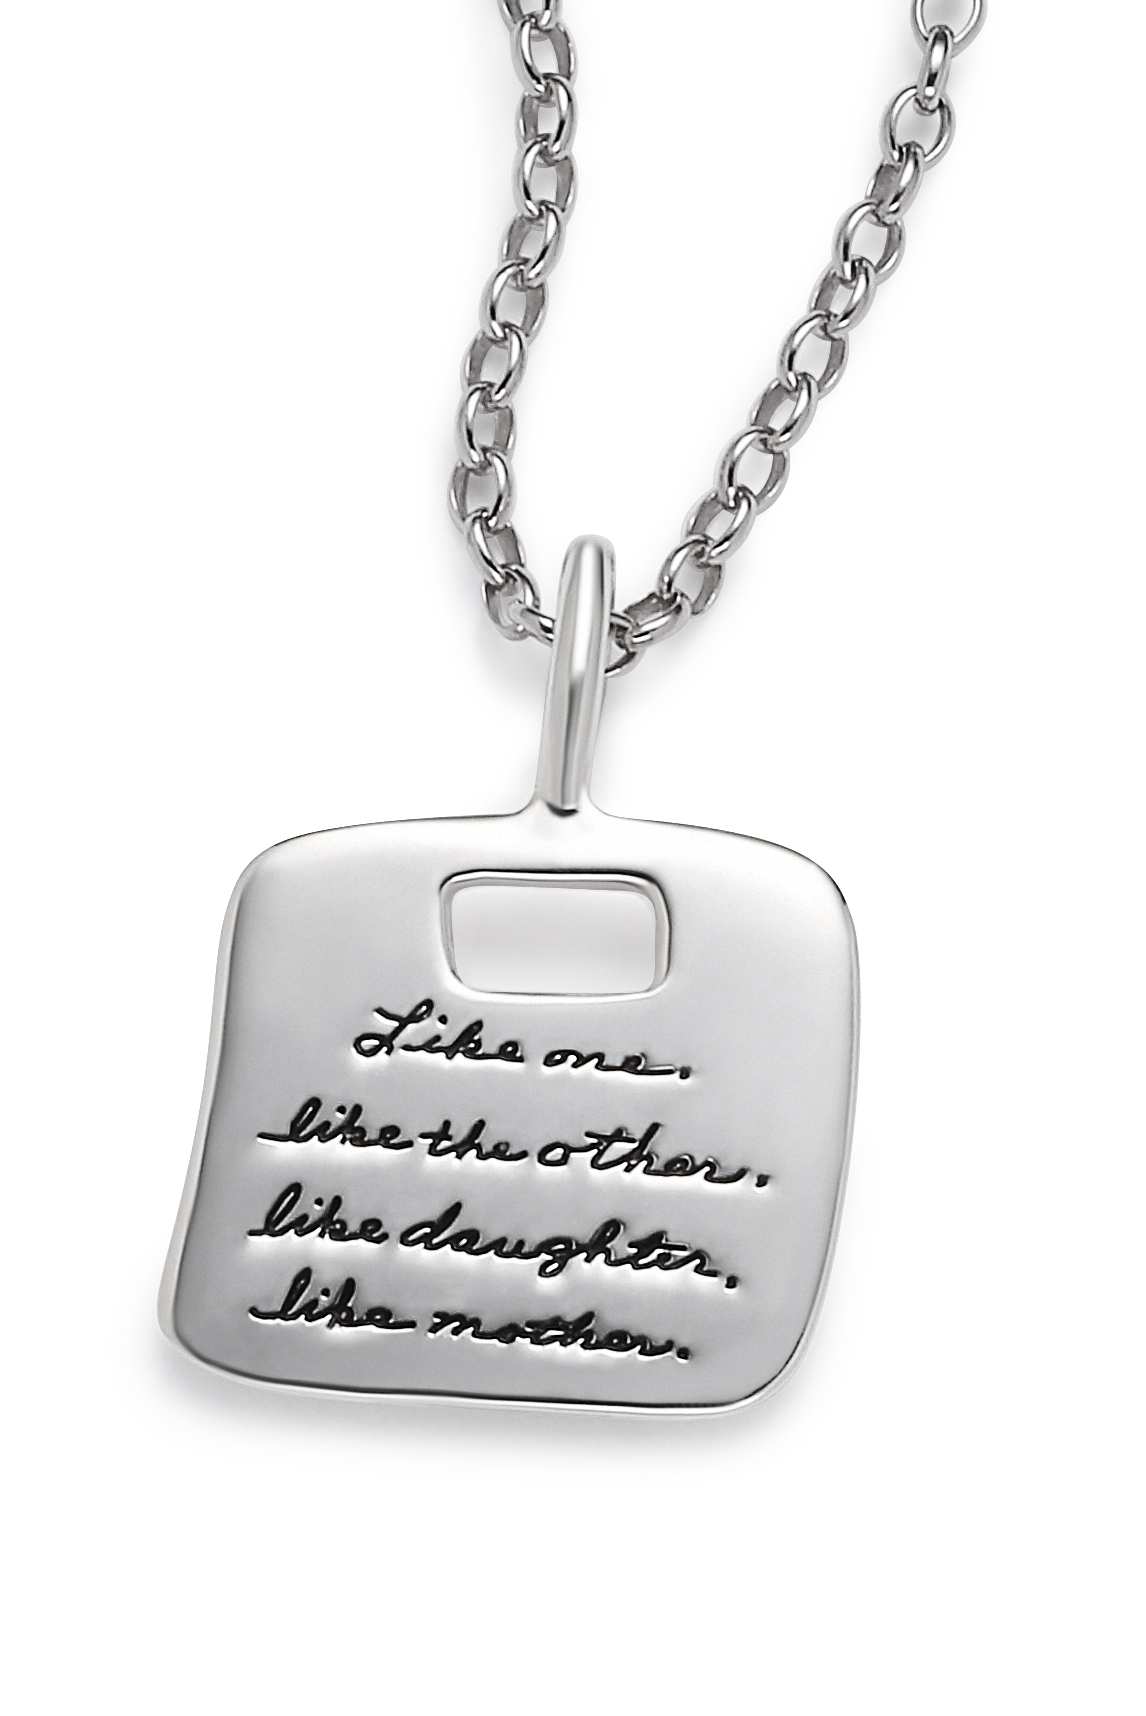 Sterling Inspirational Pendant Square shaped with rectangle cutout near the top quotation reads: Like one, like the other, like daughter, like mother.